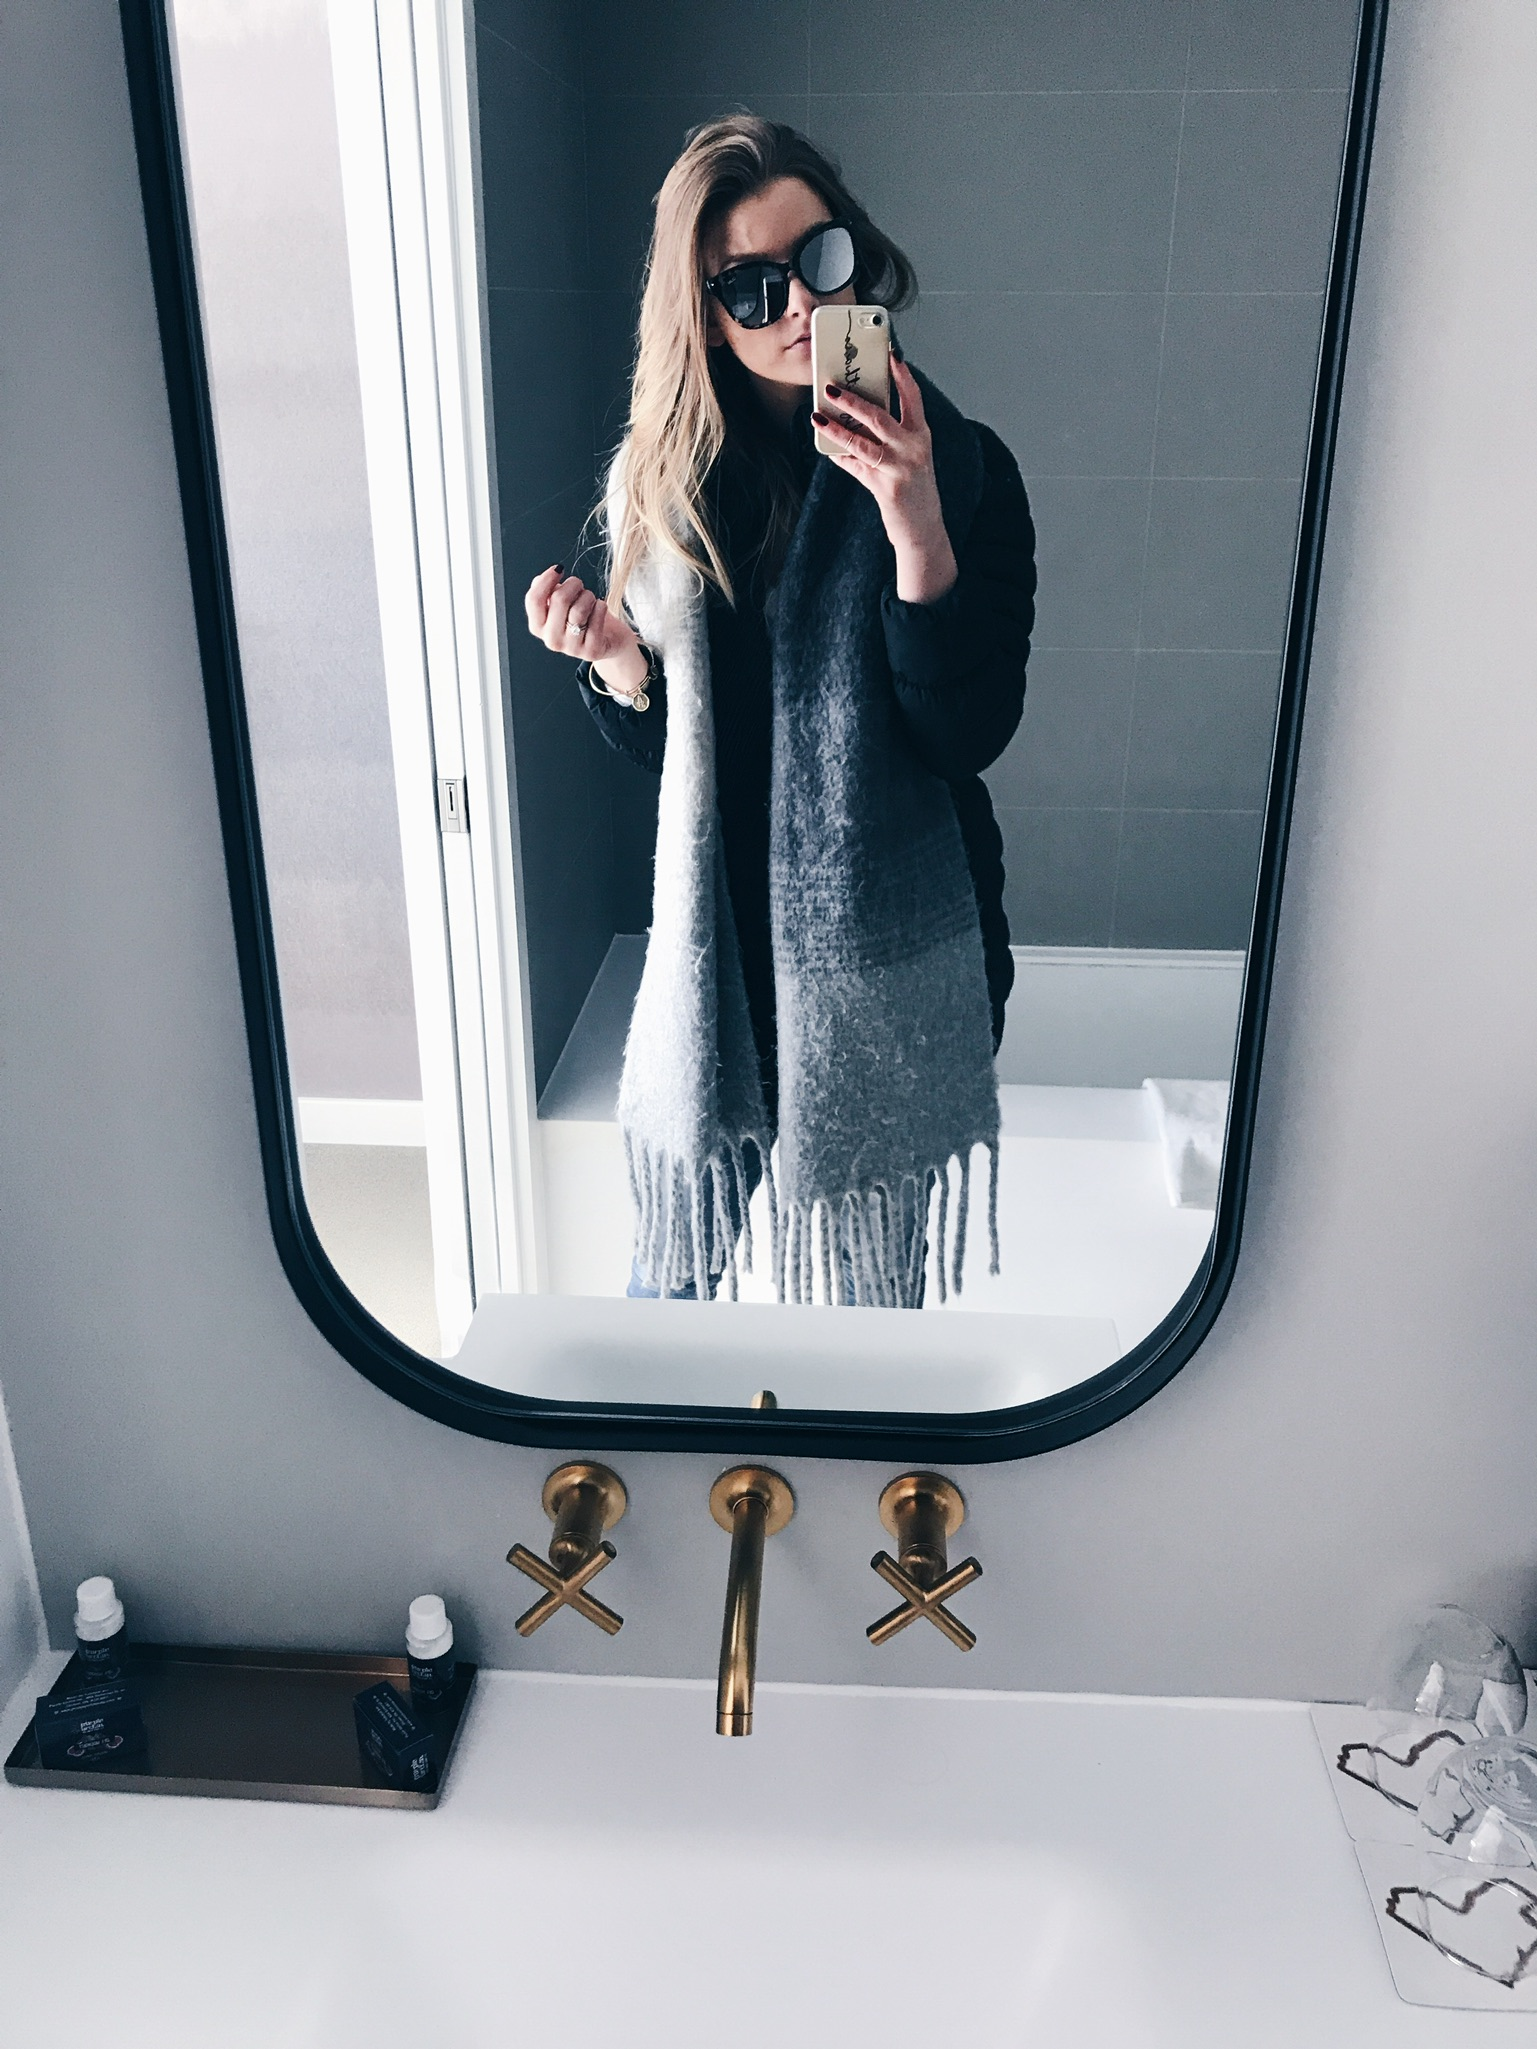 life with aco, mirror selfie, quay sunglasses, grey scarf